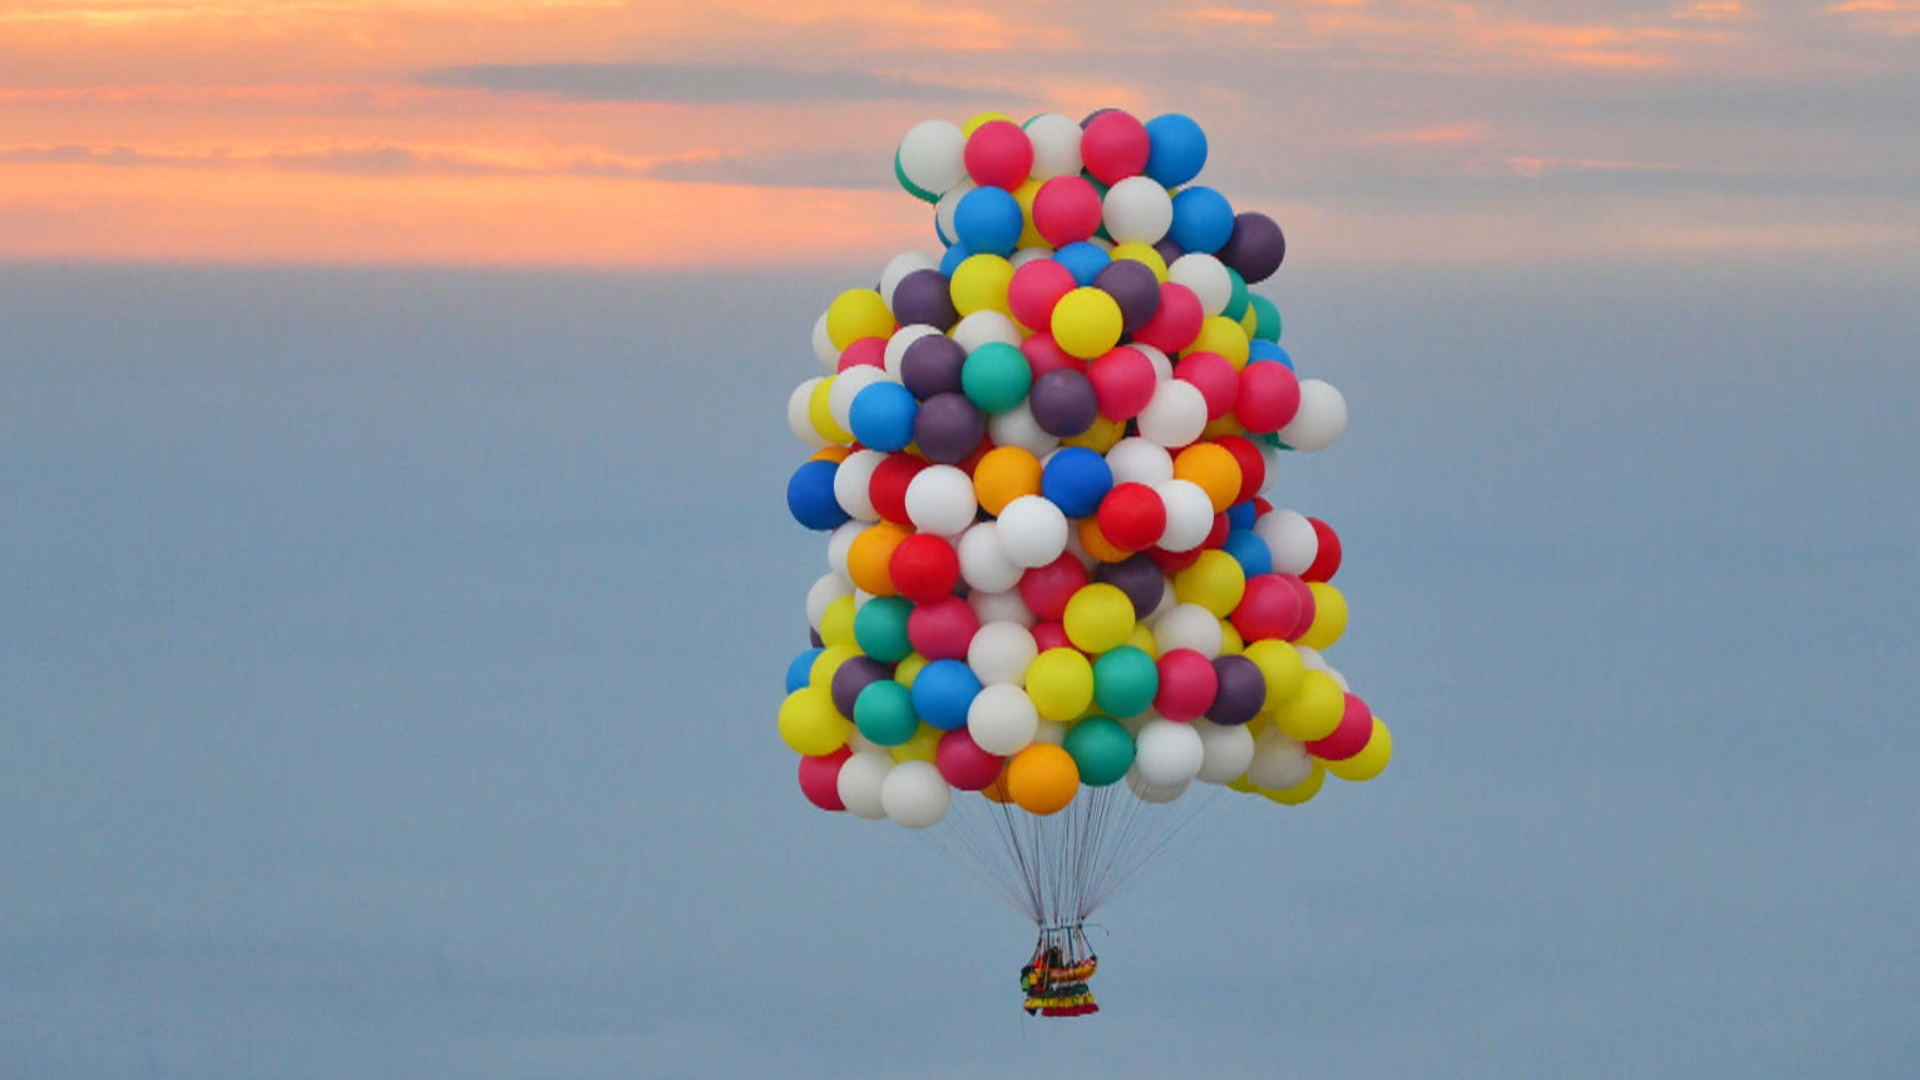 up up and away man tries flying with just balloons